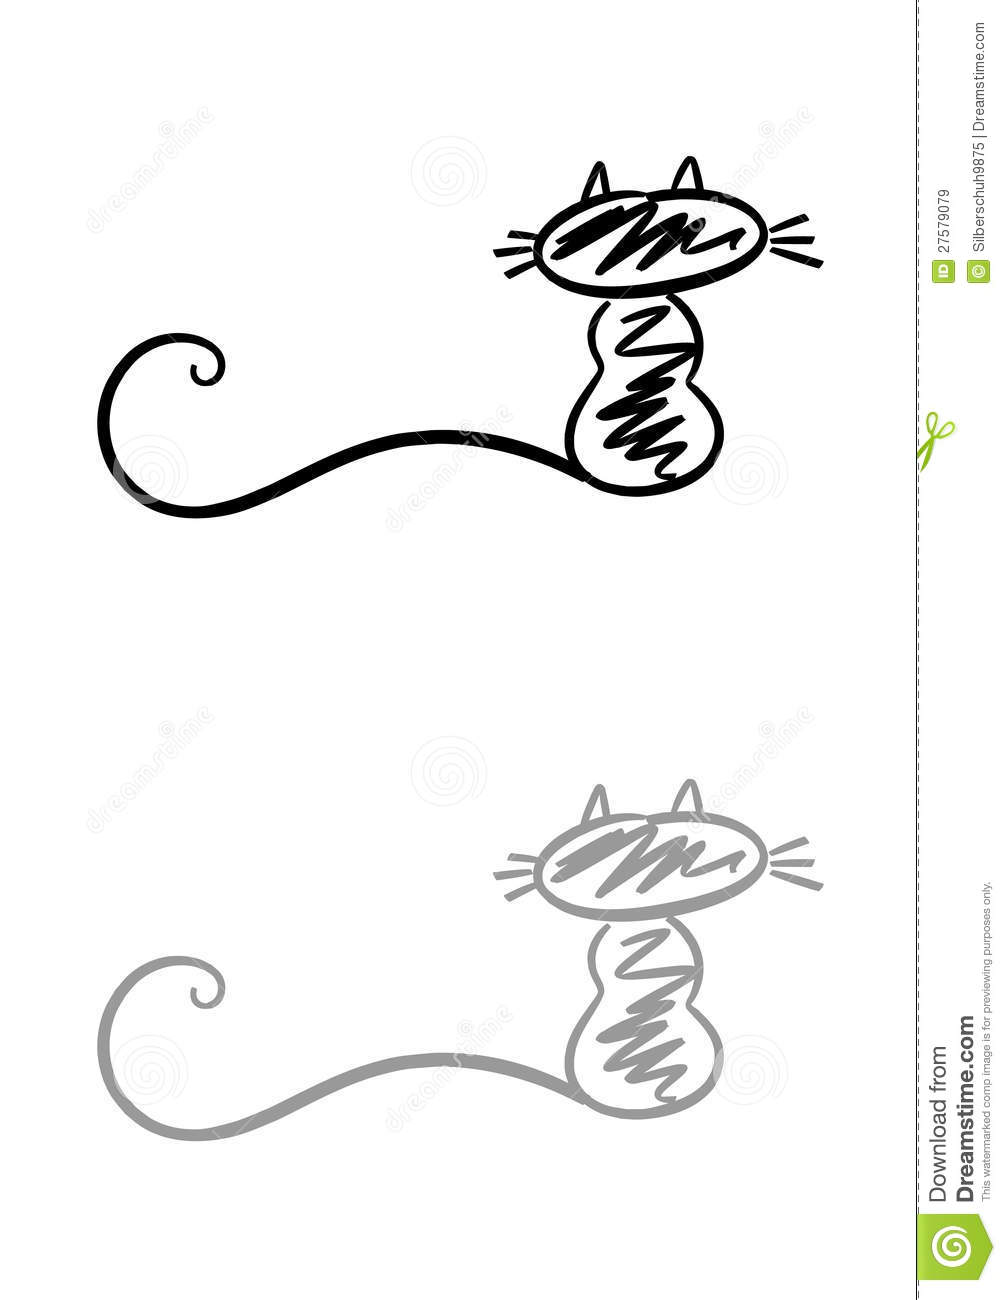 simple cat logo royalty free stock images image 27579079